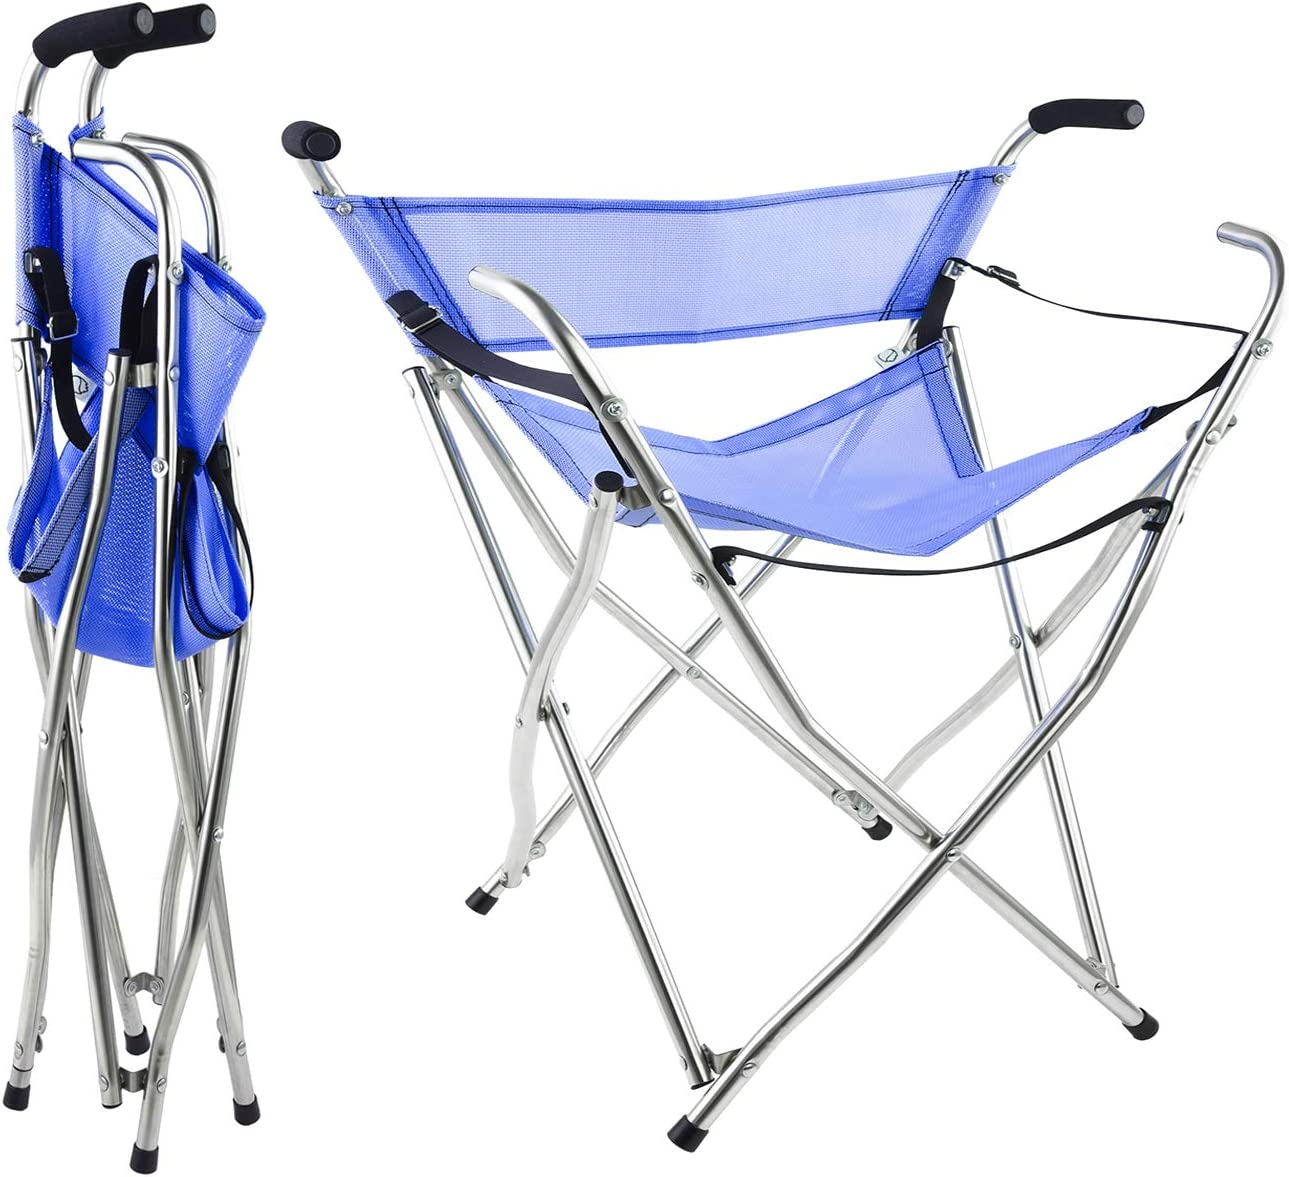 Freshore Canes and Walking Sticks Seat Super sale - 300lbs Clearance SALE! Limited time! Collapsible Spor